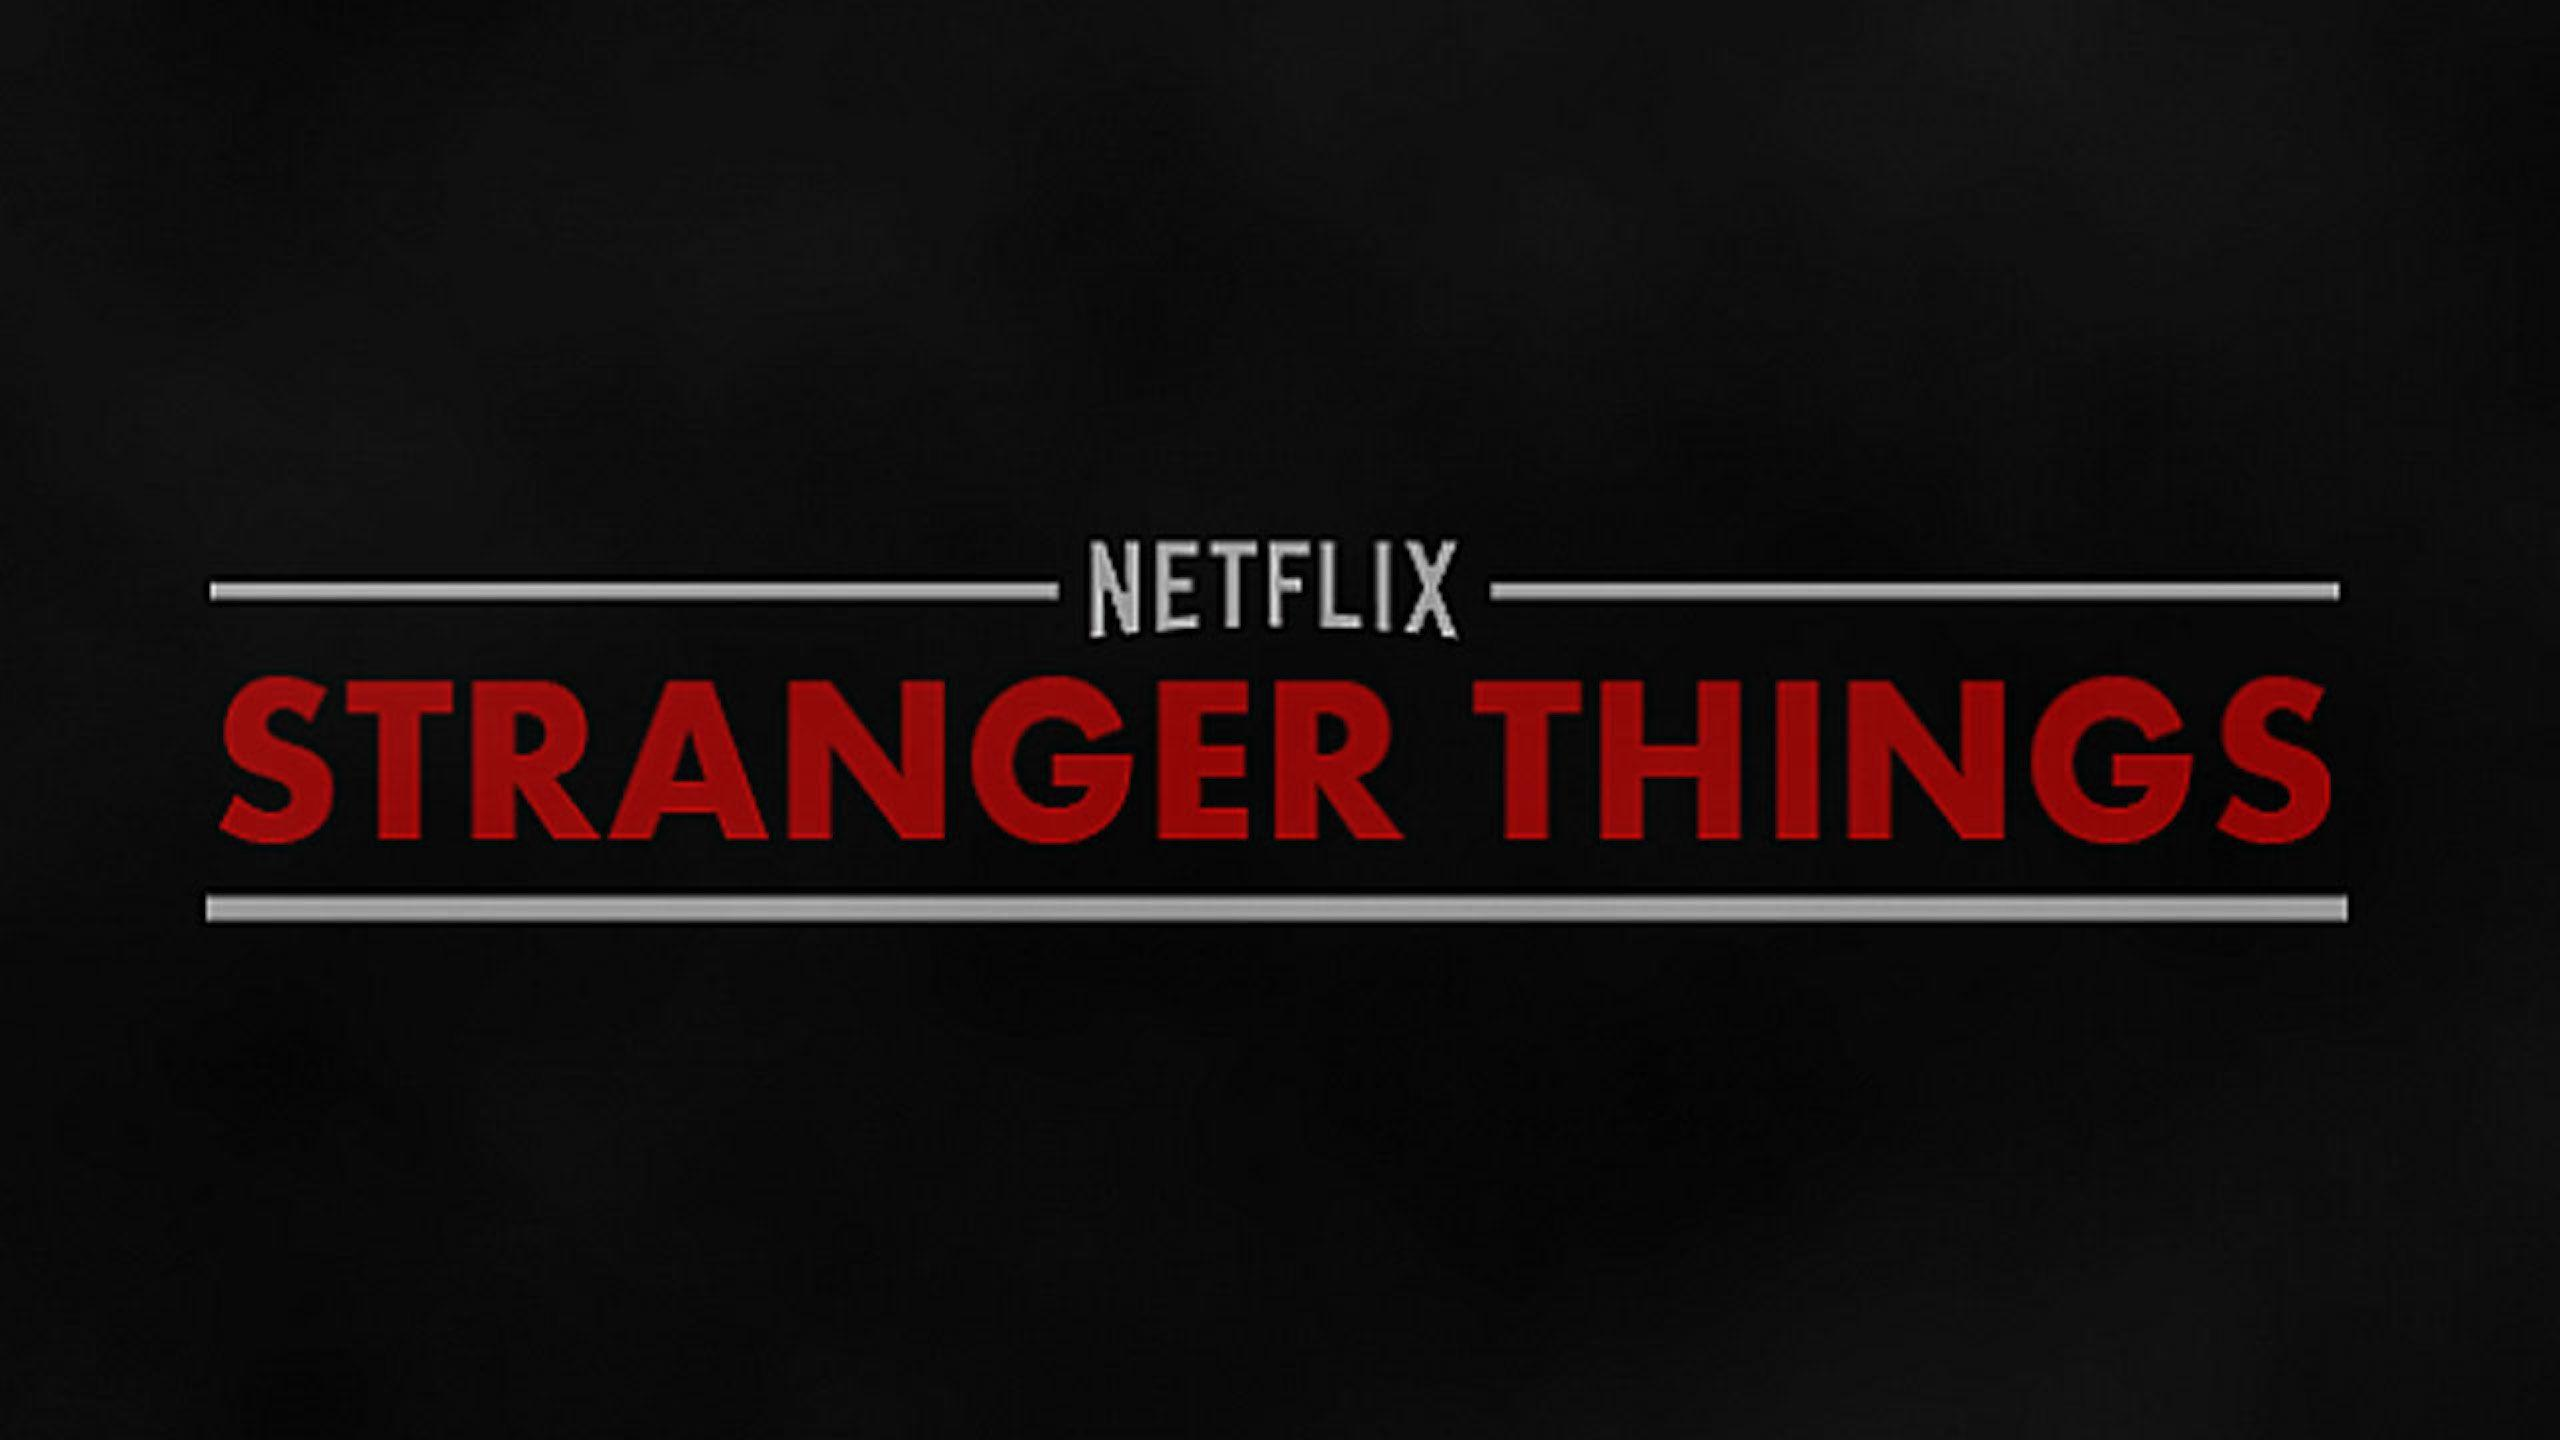 Netflix Desktop Wallpapers Top Free Netflix Desktop Backgrounds